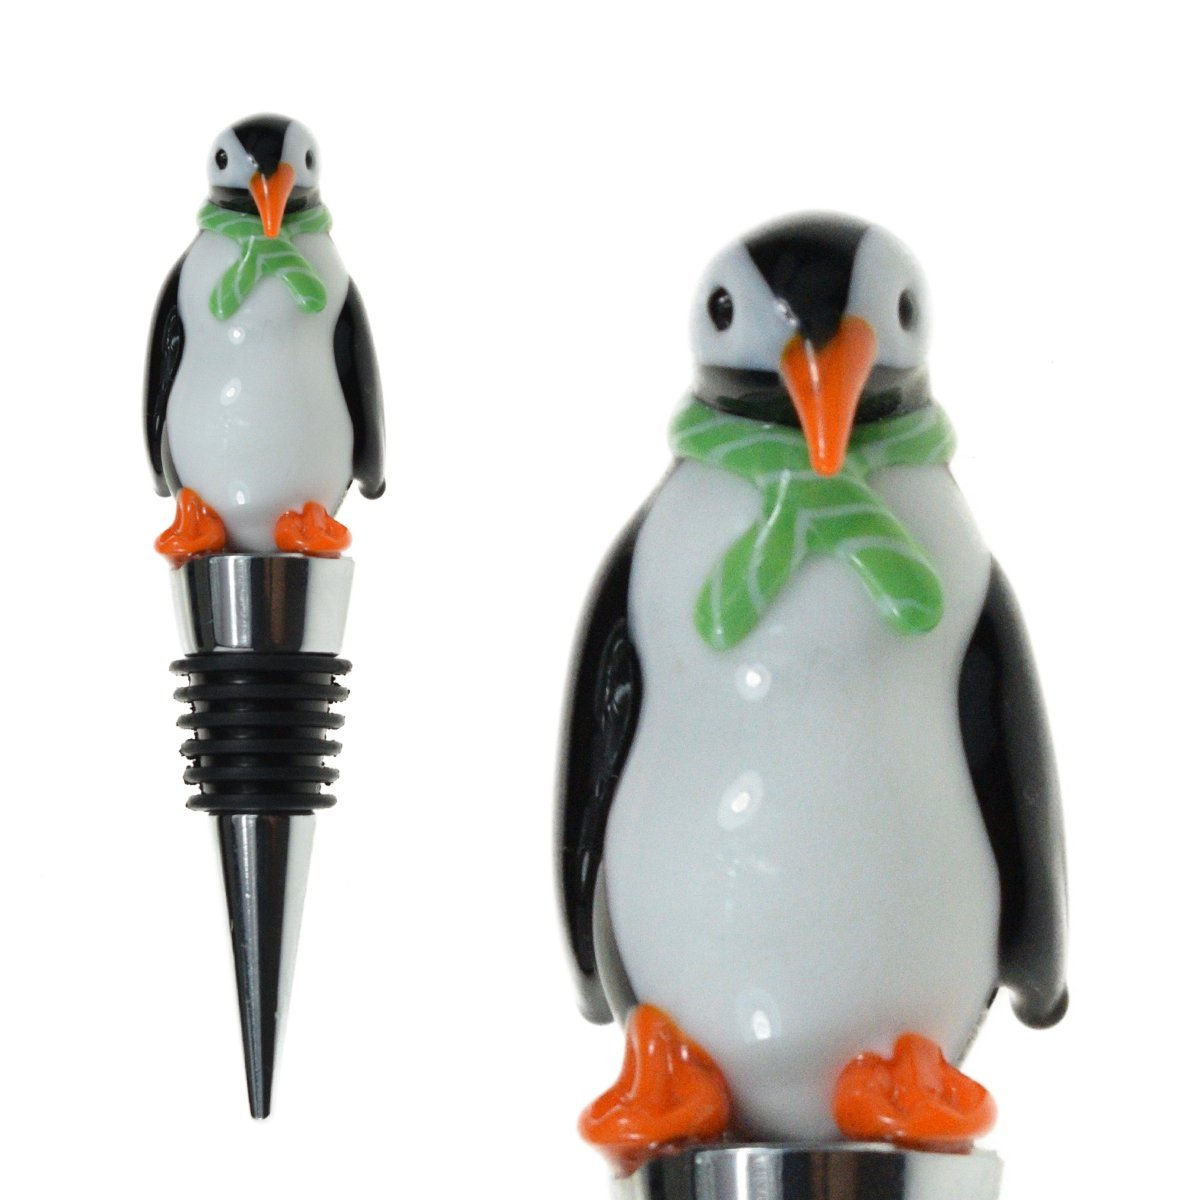 Glass Penguin Wine Bottle Stopper (20+ Designs to Choose From) - Colorful, Unique, Handmade, Eye-Catching Decorative Glass Wine Bottle Stopper … (Penguin)